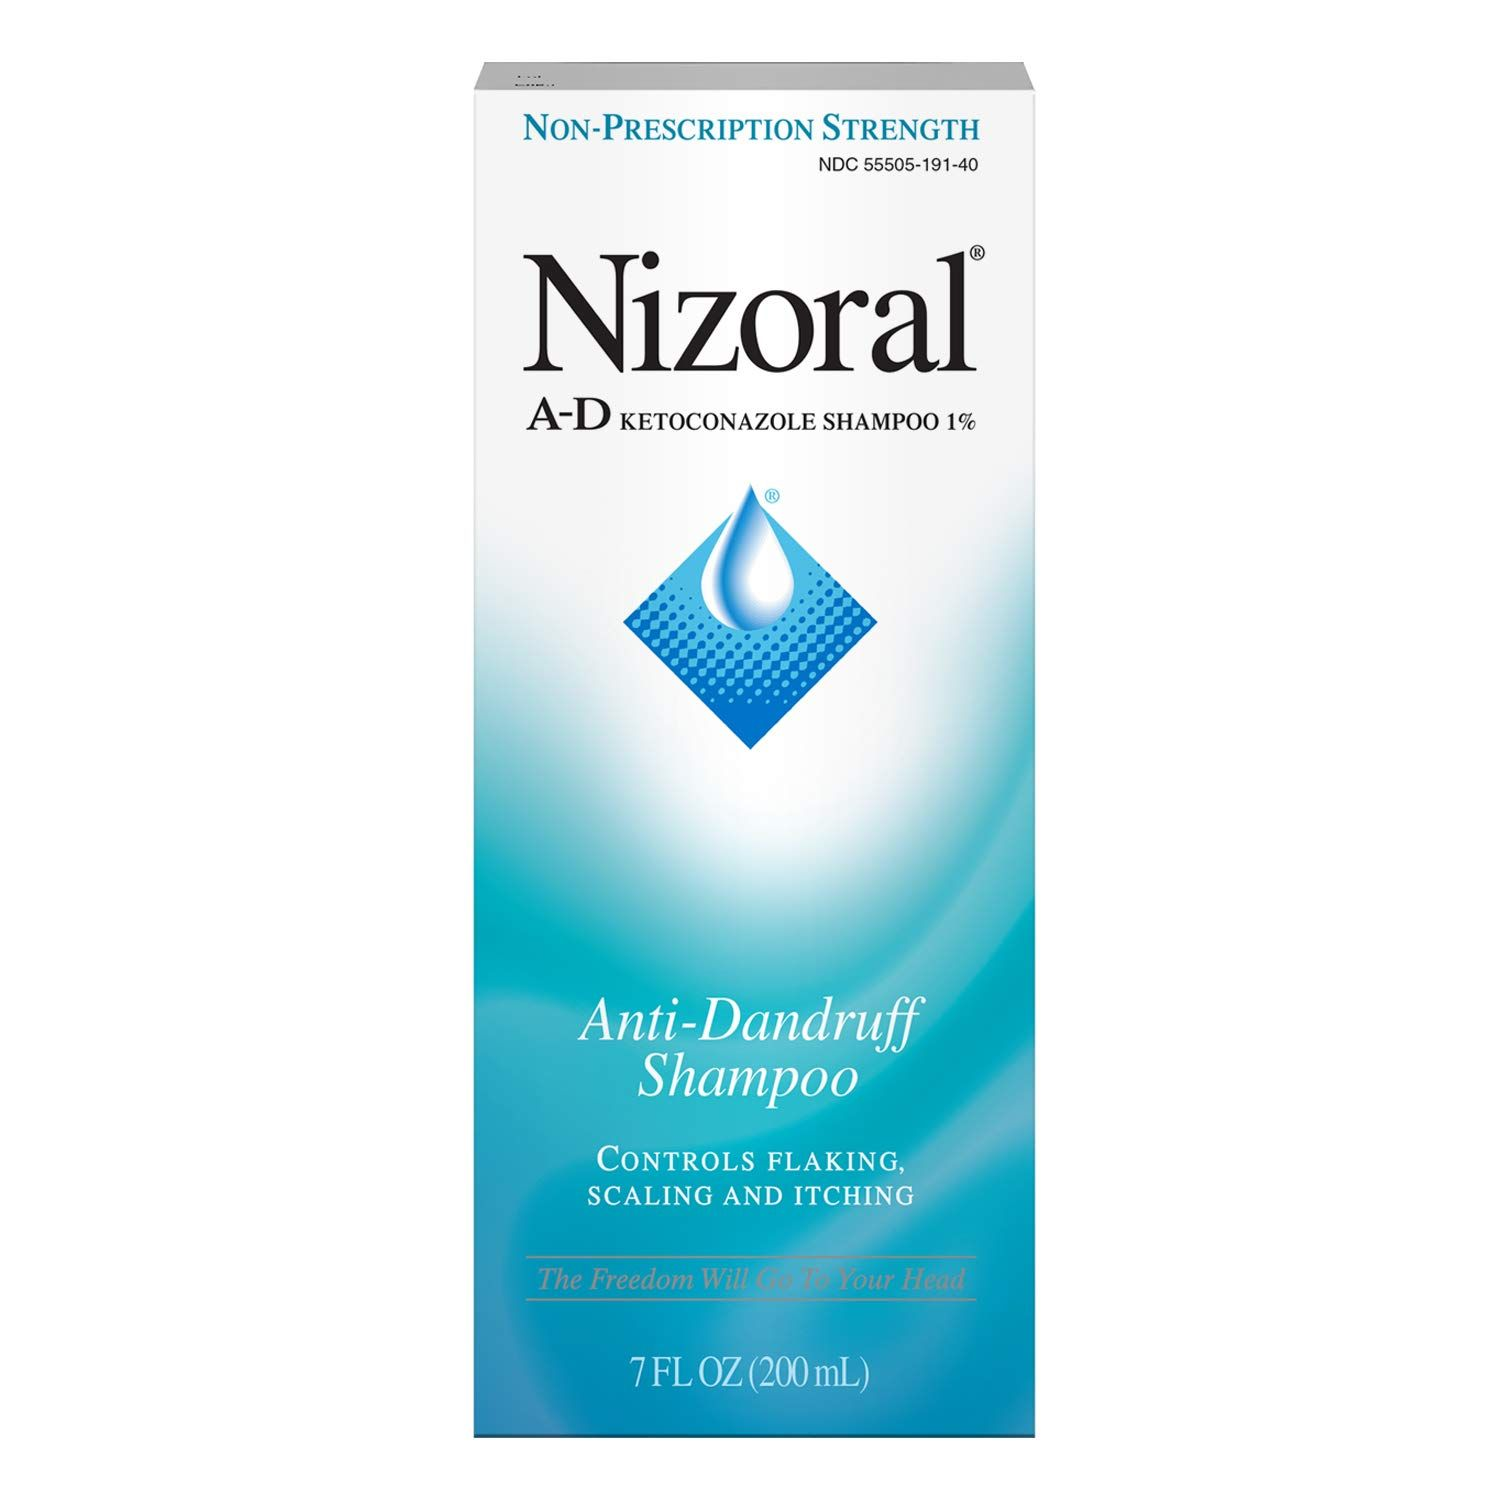 Details About Nizoral A D Anti Dandruff Shampoo 7 Fl Oz In 2020